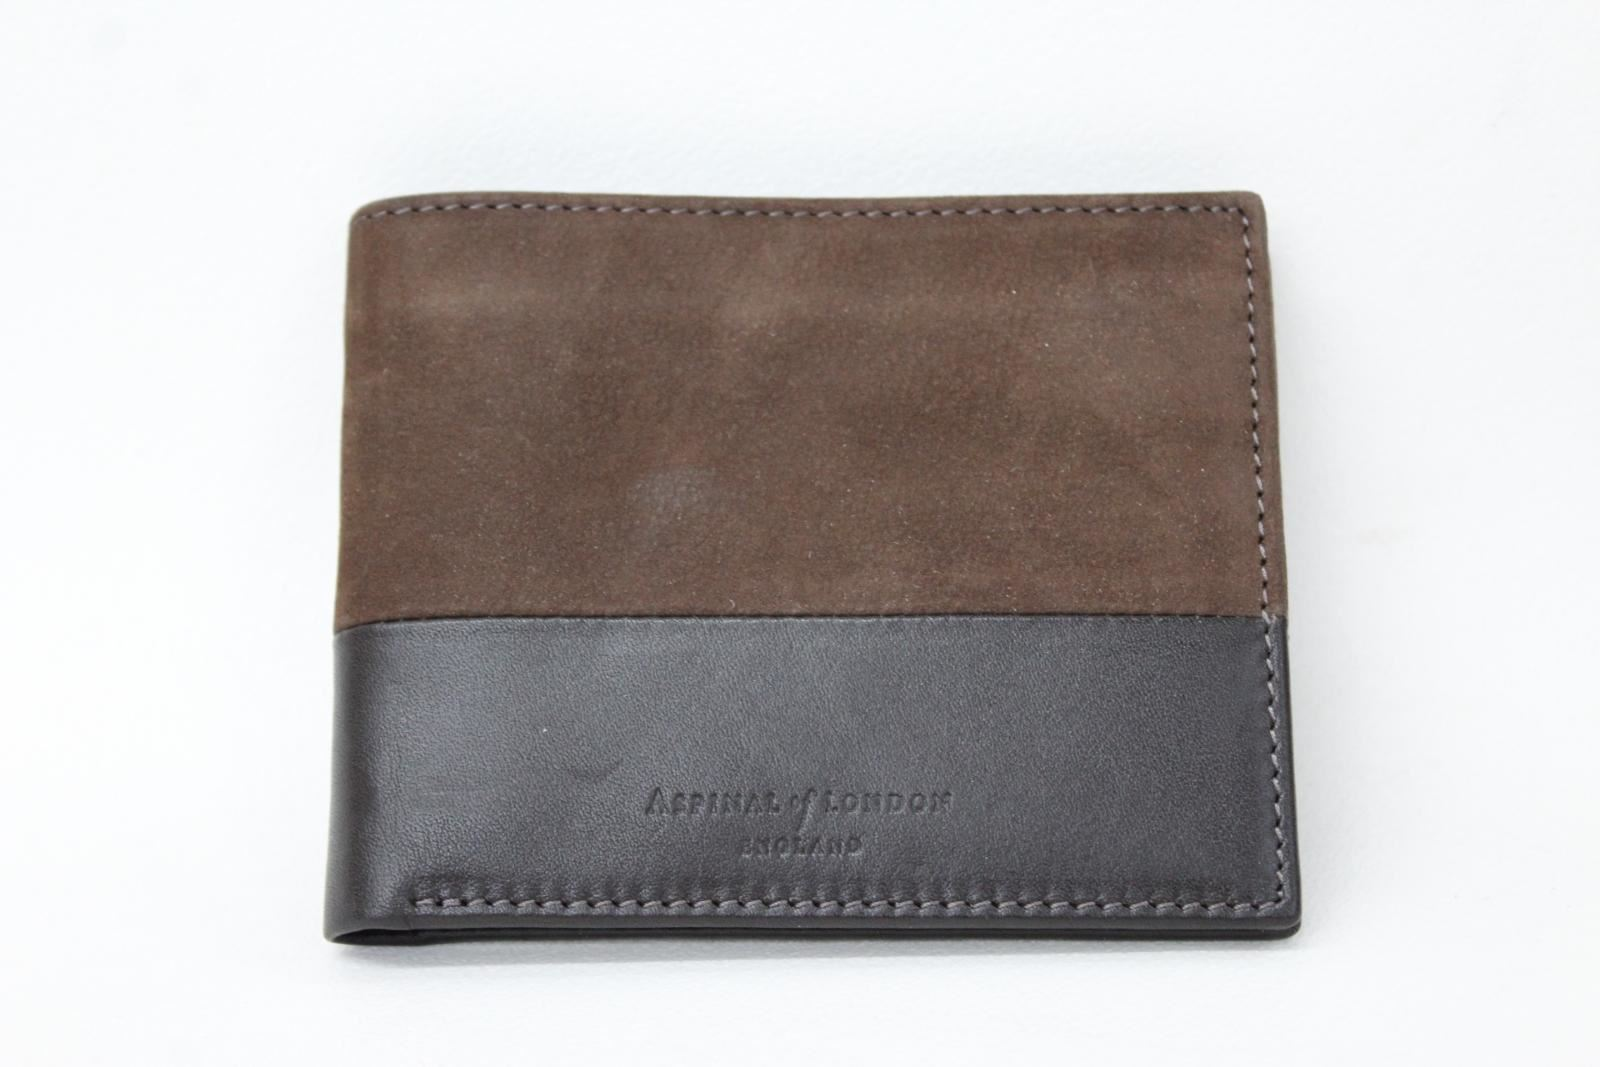 ASPINAL-OF-LONDON-Men-039-s-Smooth-Brown-Leather-amp-Nubuck-Embossed-Bifold-Wallet-NEW